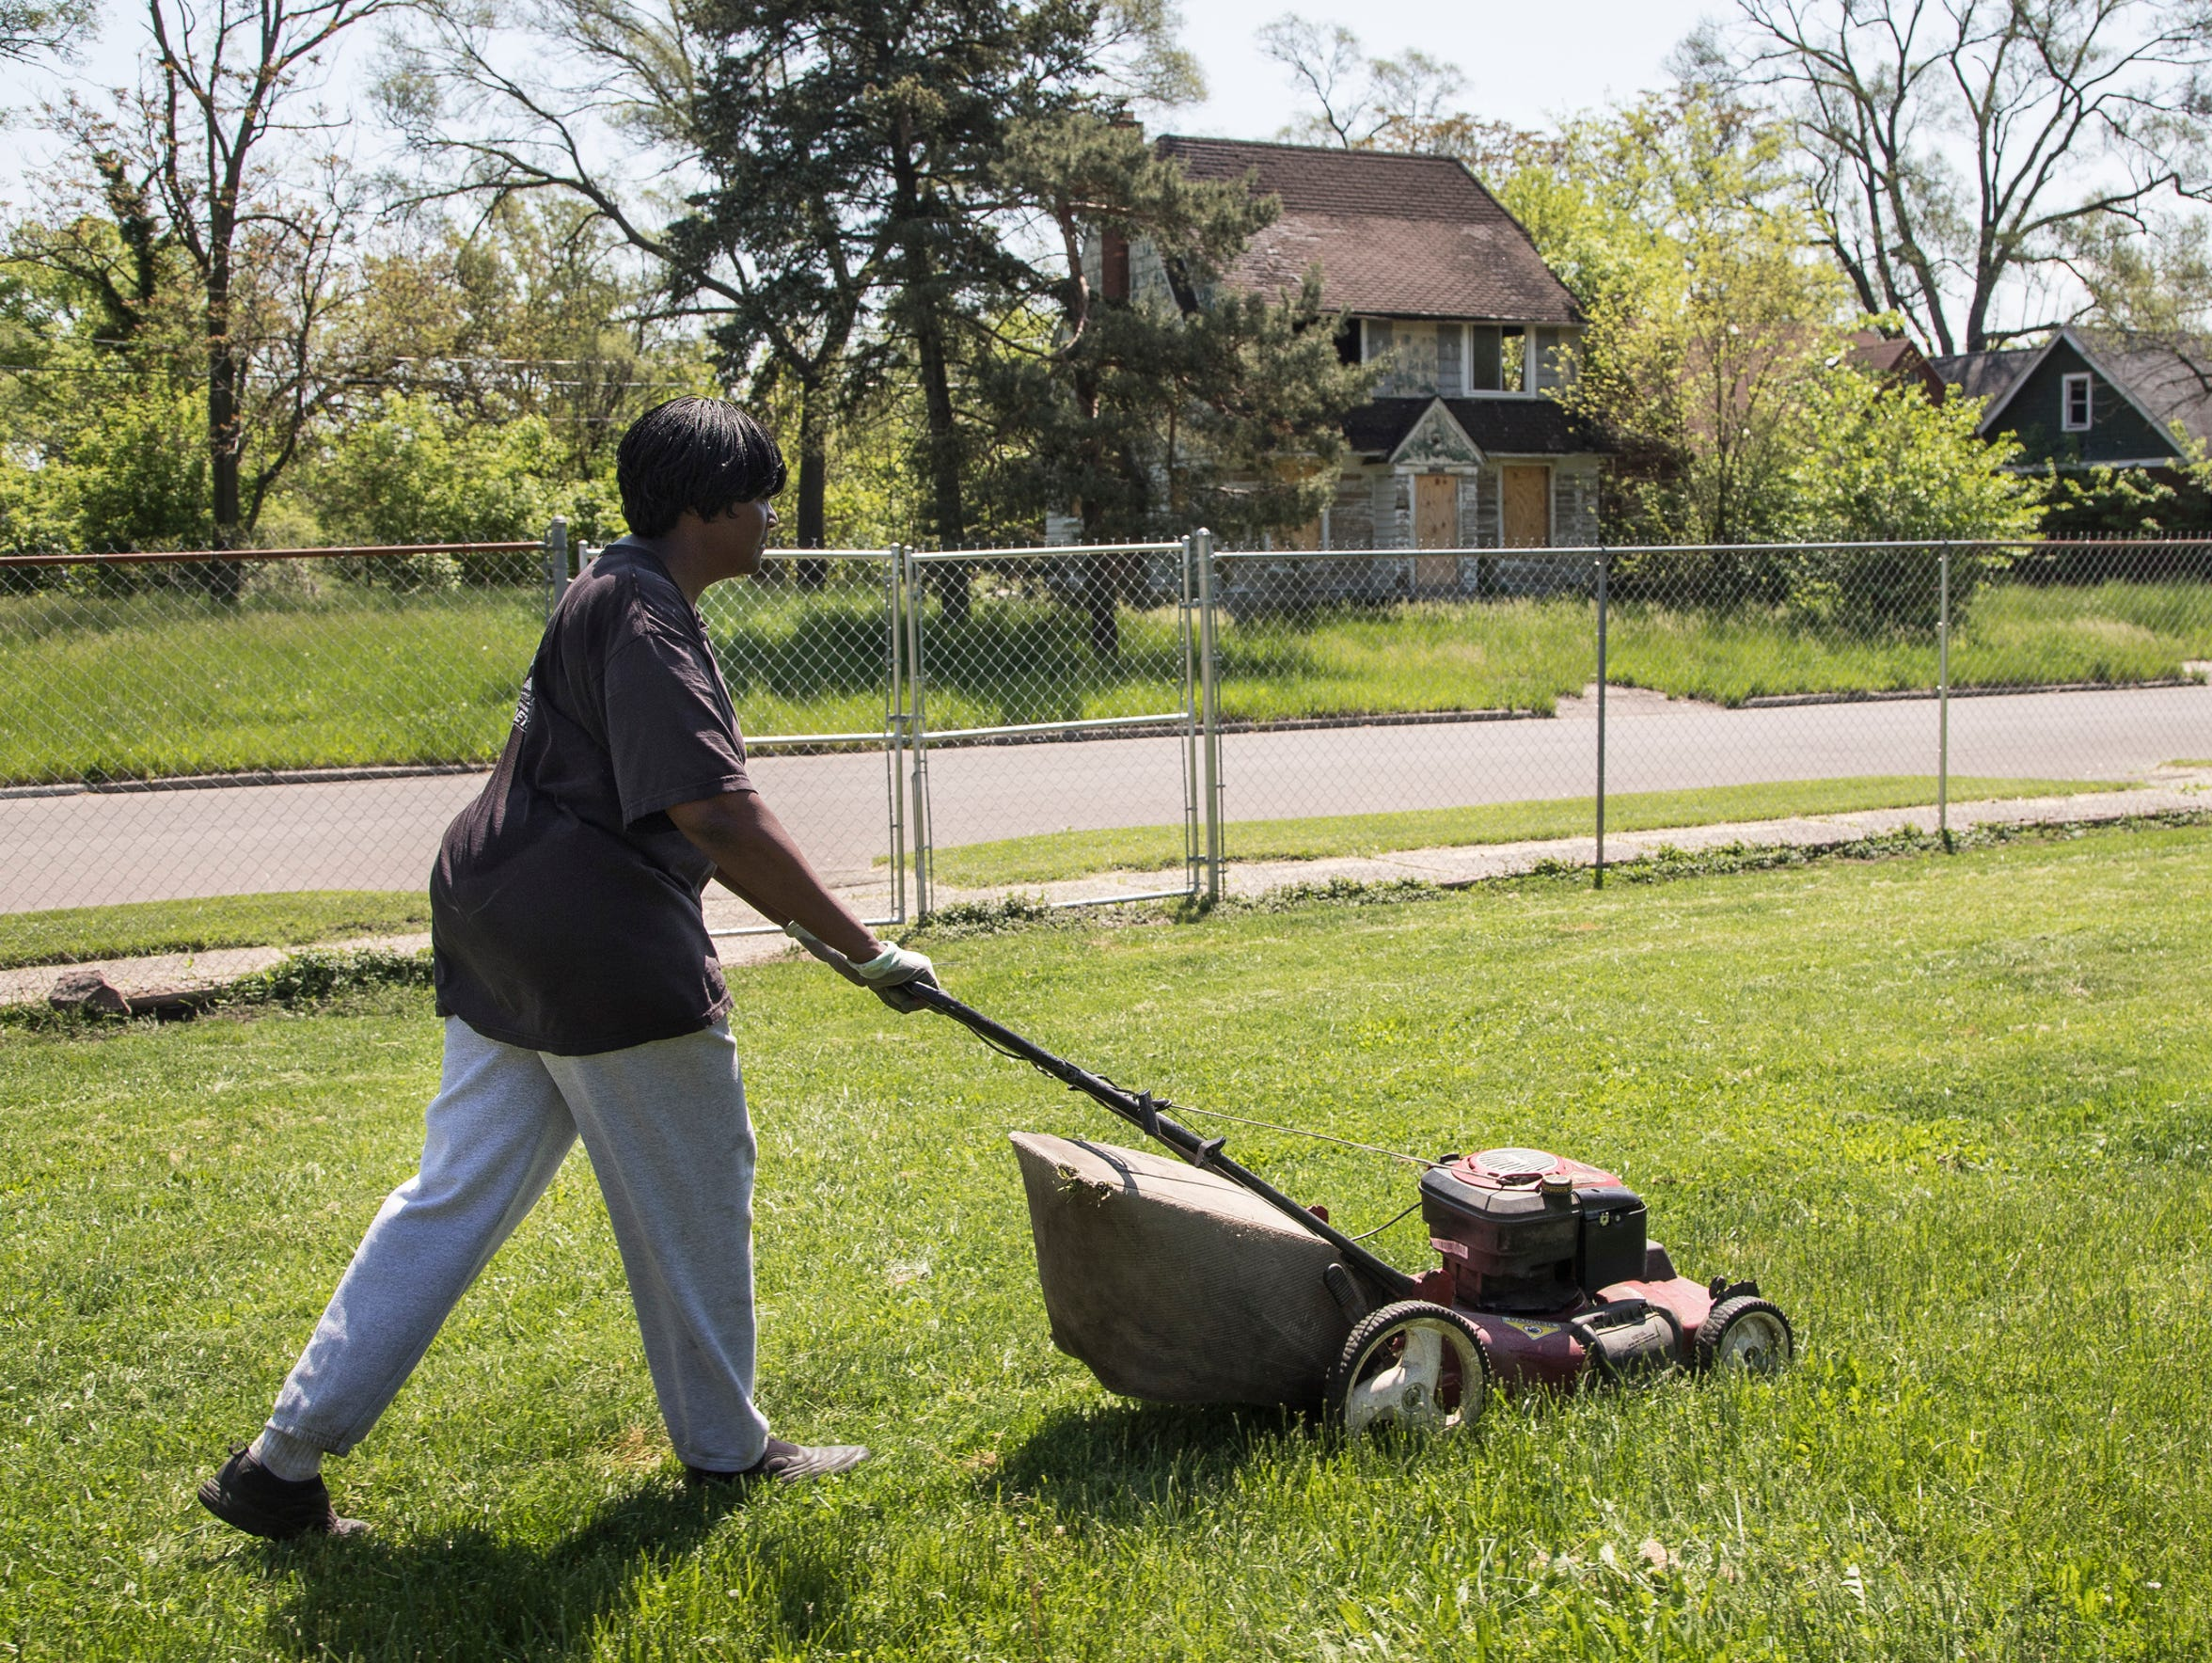 Anna Hollins in May mows the yard of her Lauder Street home, which sits across from a land bank house investigated for possible dog fighting. (Photo taken May 25, 2018)